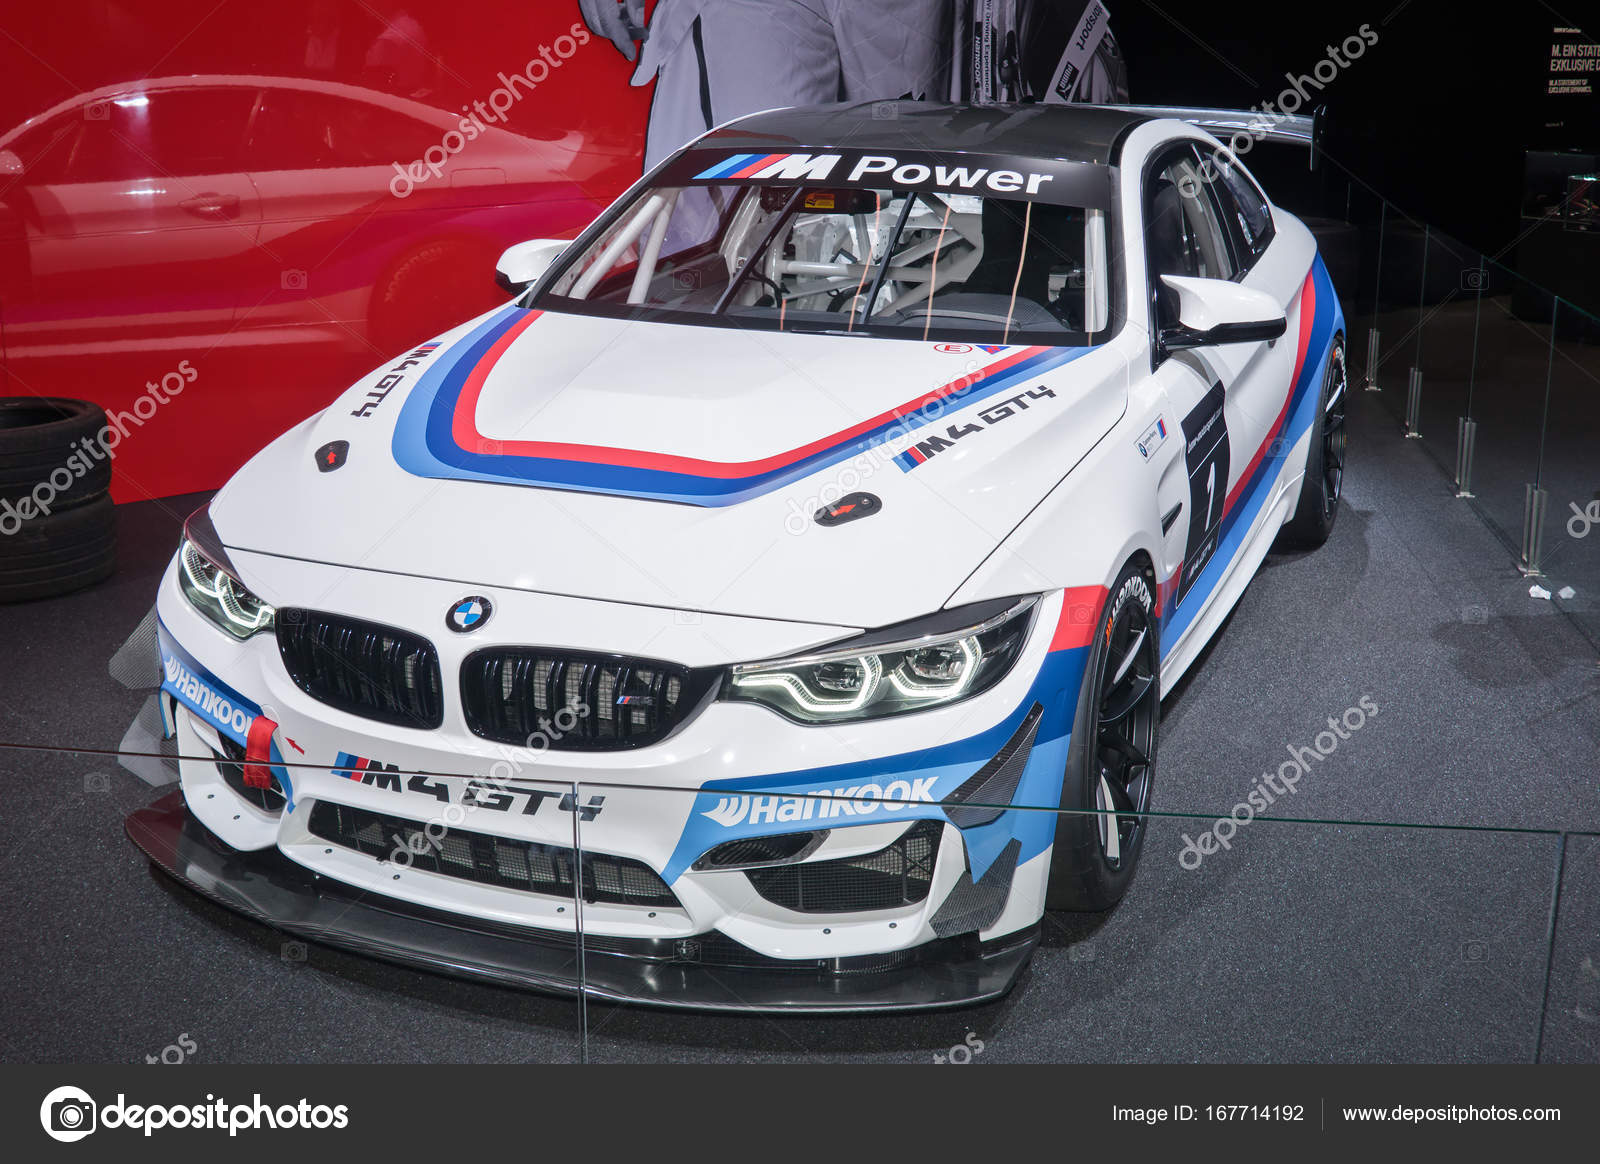 bmw m4 gt4 race car stock editorial photo eans 167714192. Black Bedroom Furniture Sets. Home Design Ideas